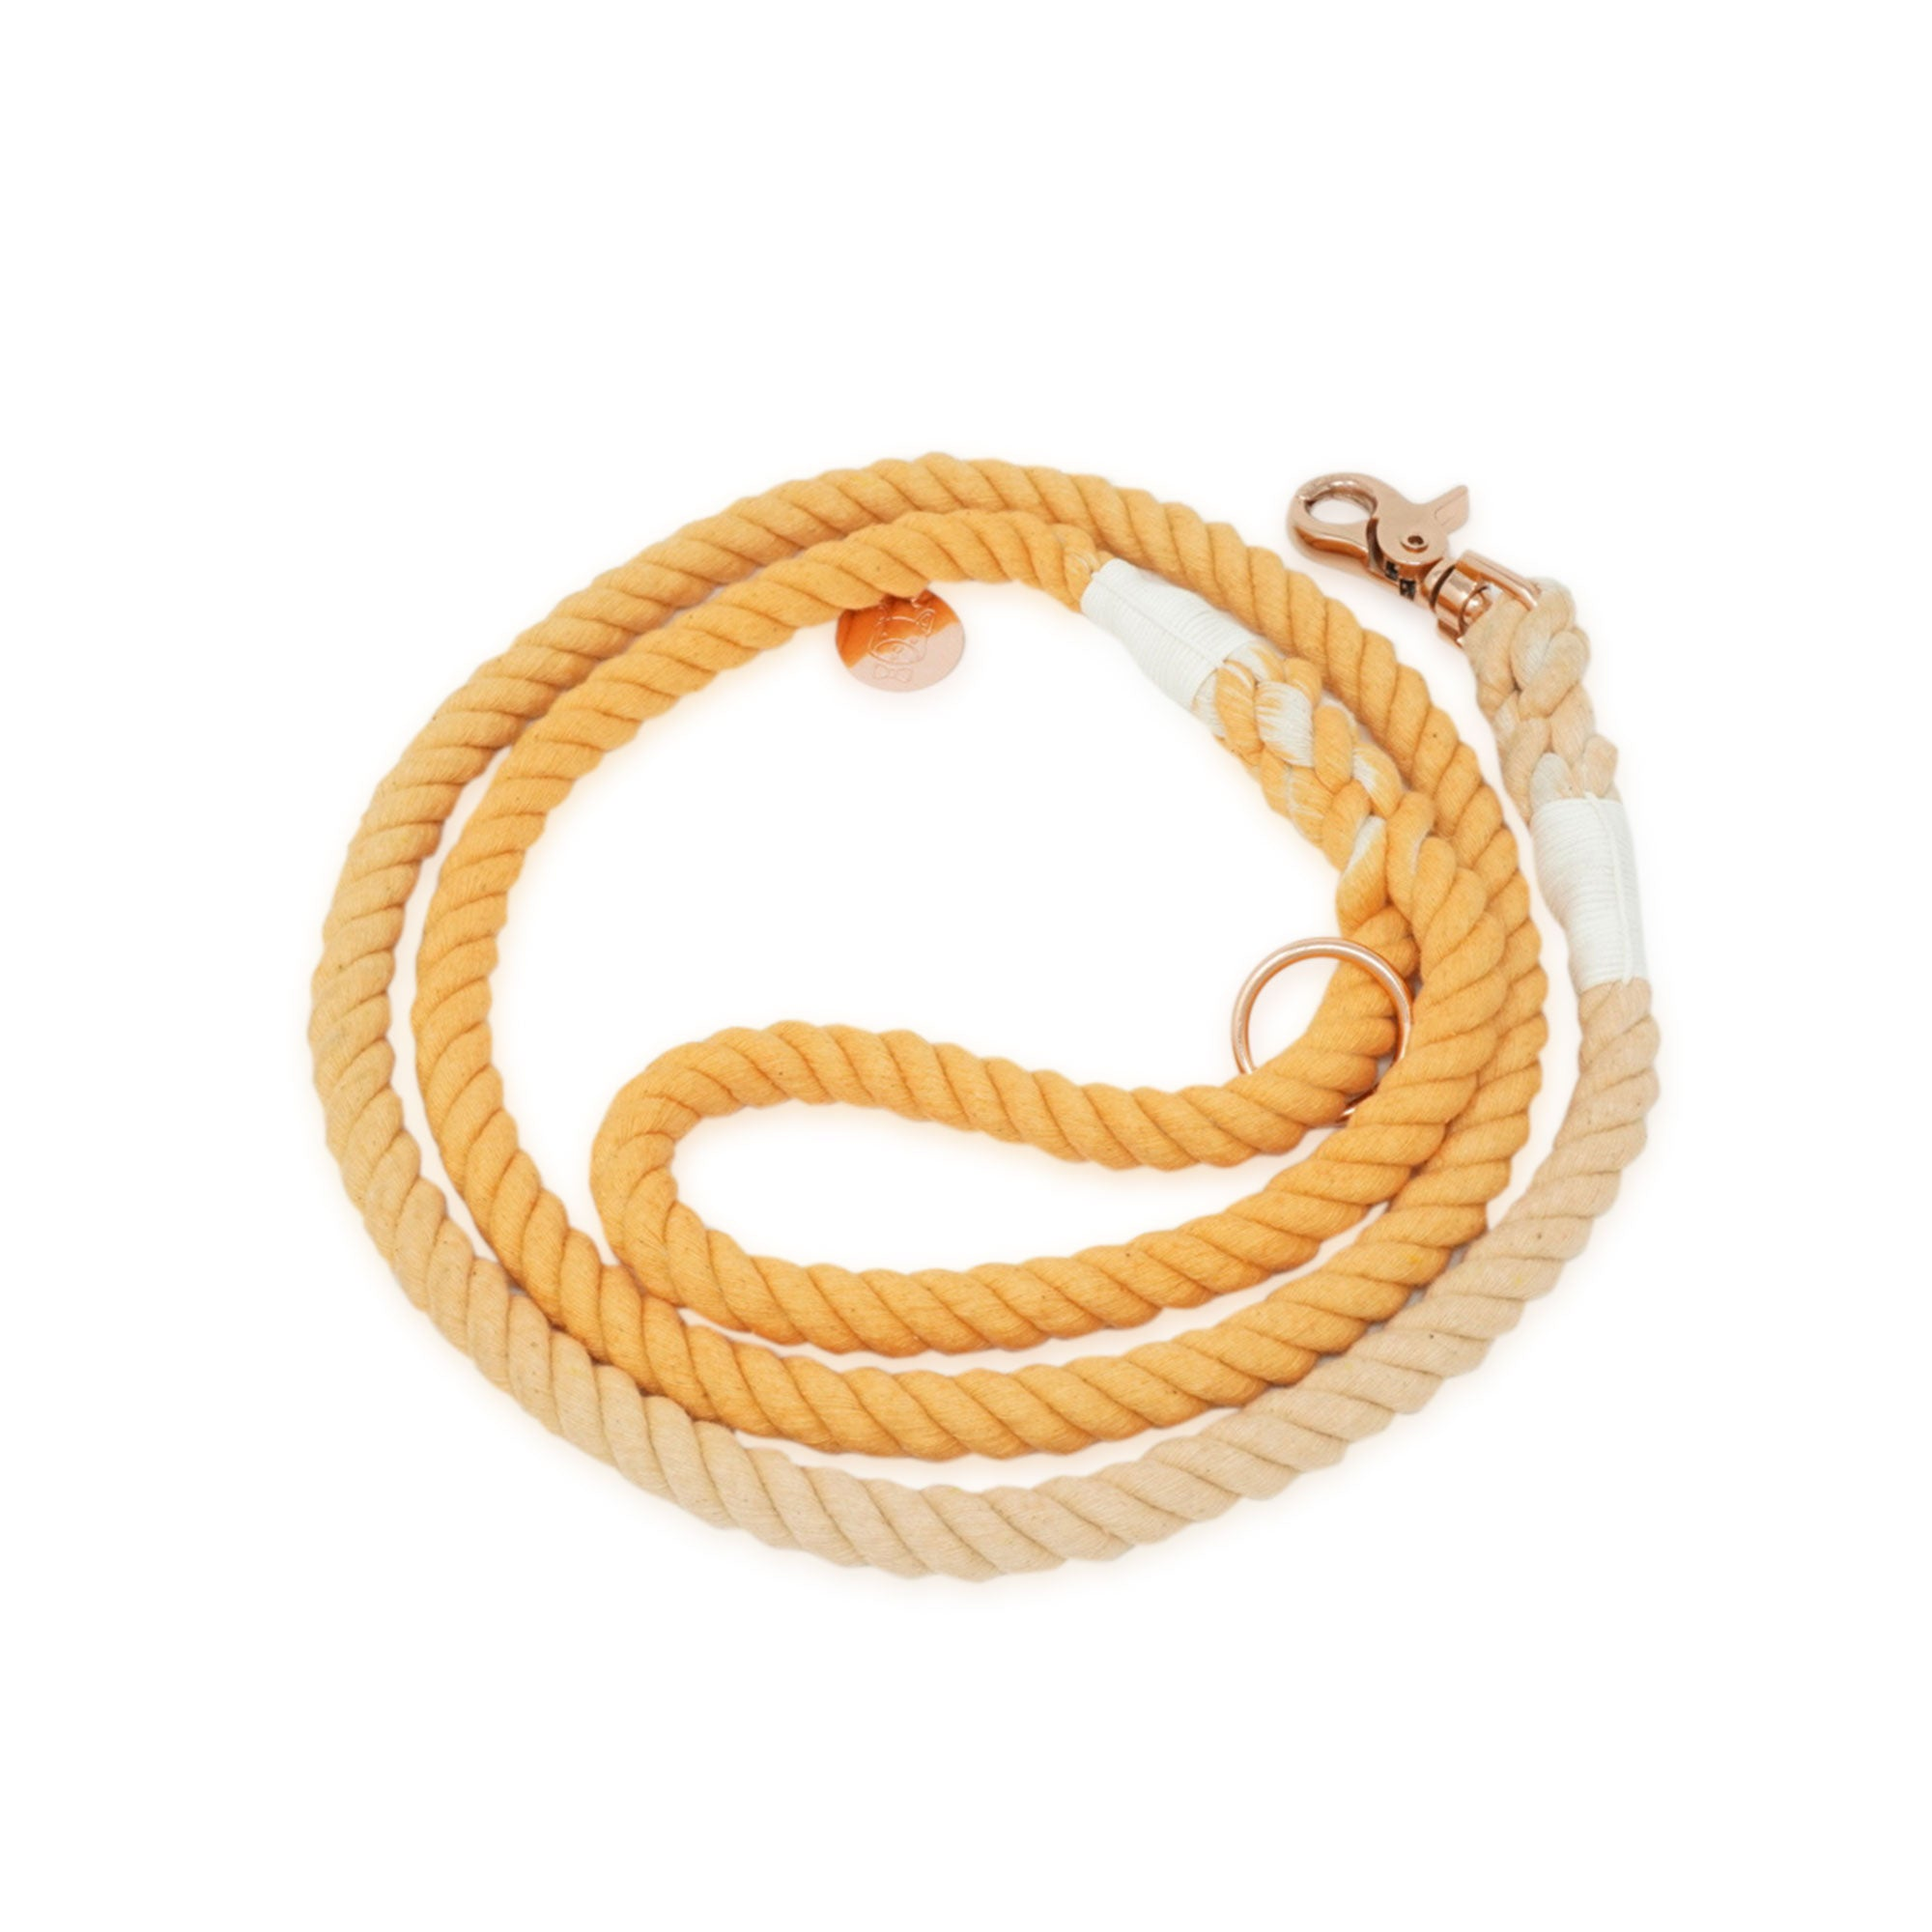 Cotton Rope Leash - Orange Creamsicle